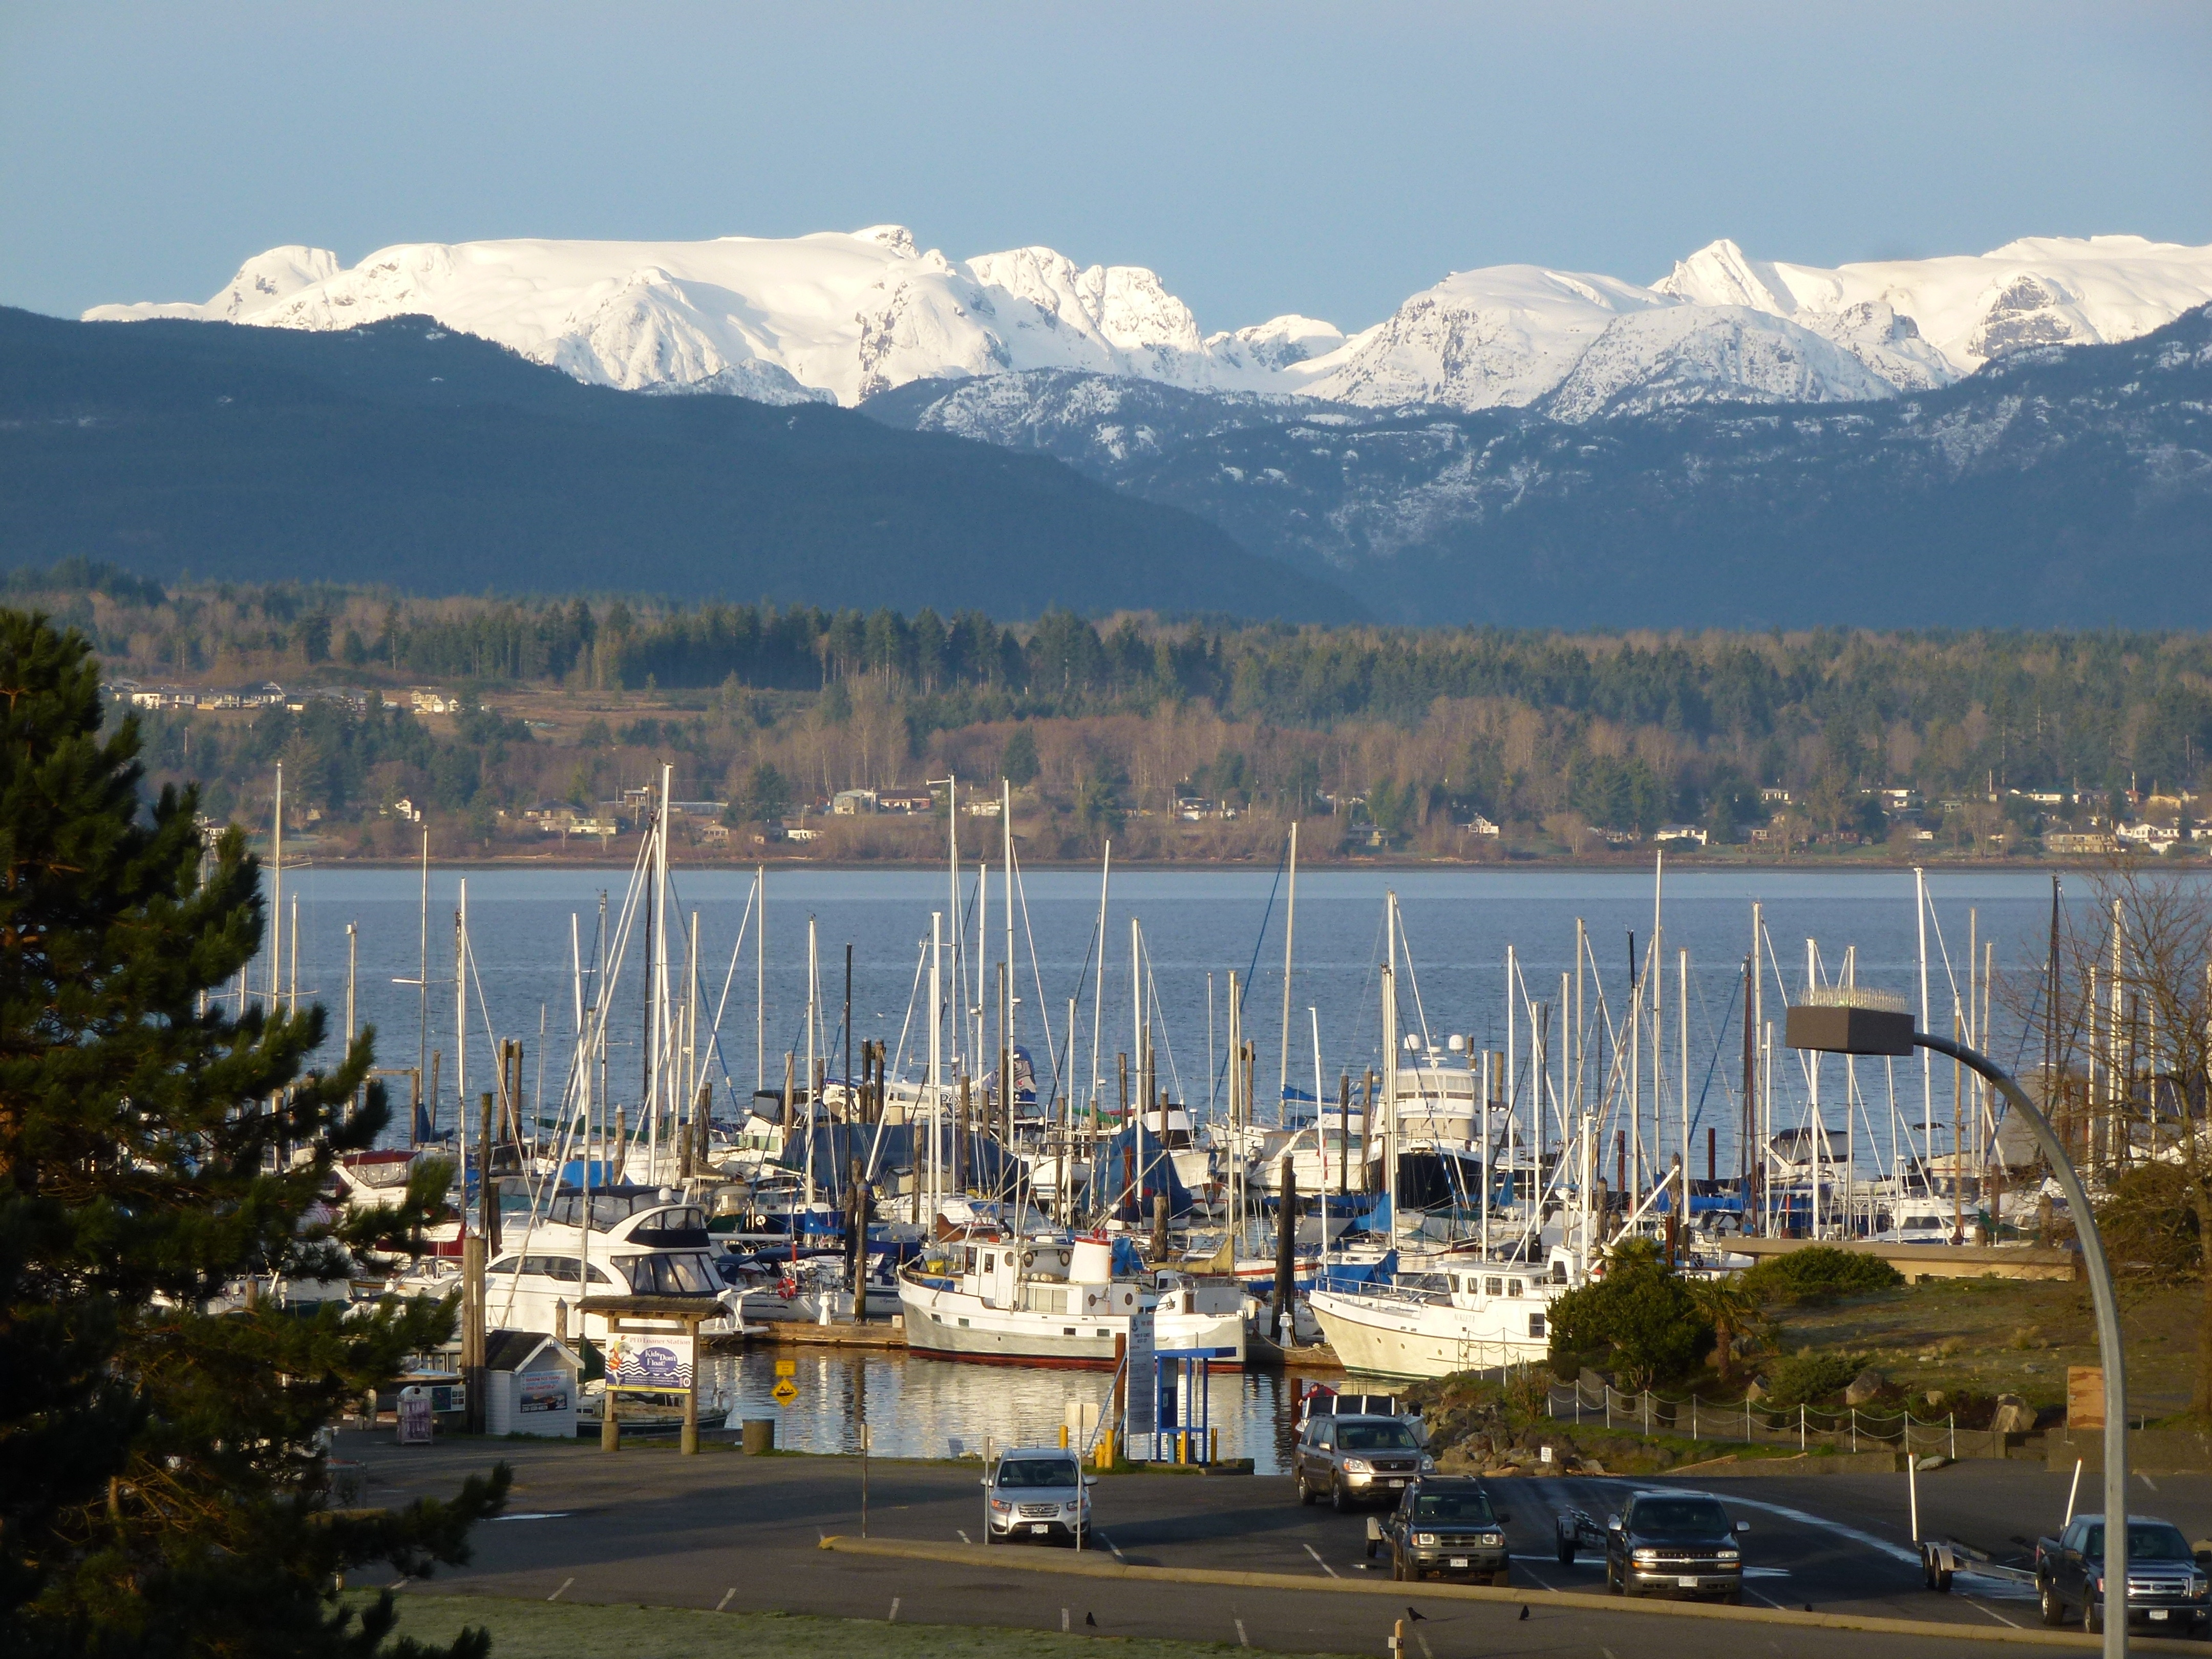 Glacier as seen from the Comox Harbour